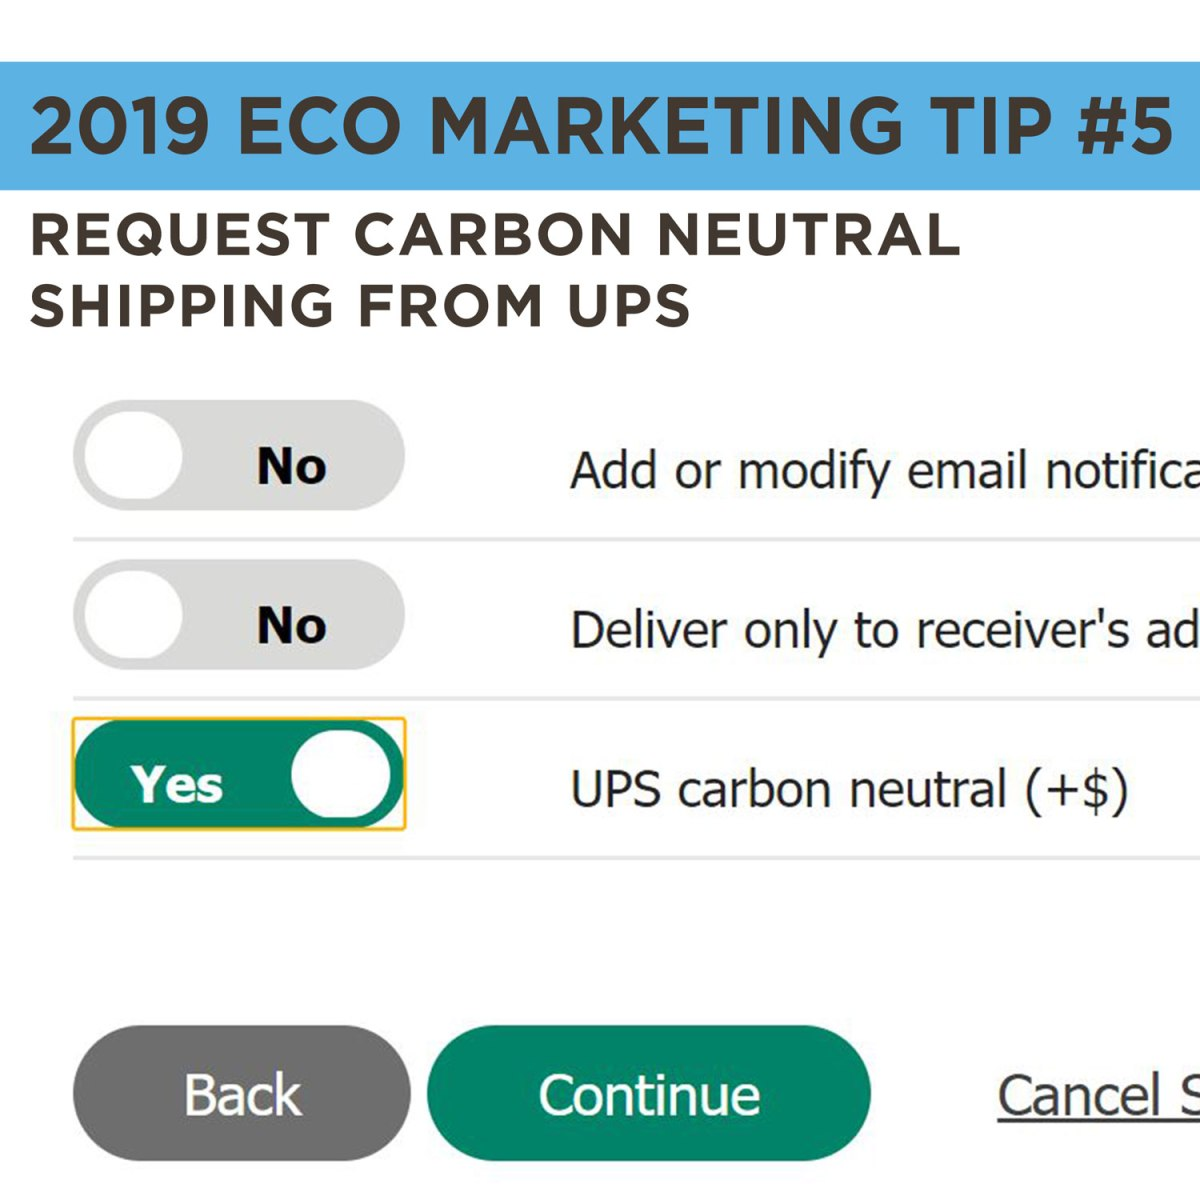 Eco Marketing Tip 5 is to request carbon neutral shipping from UPS